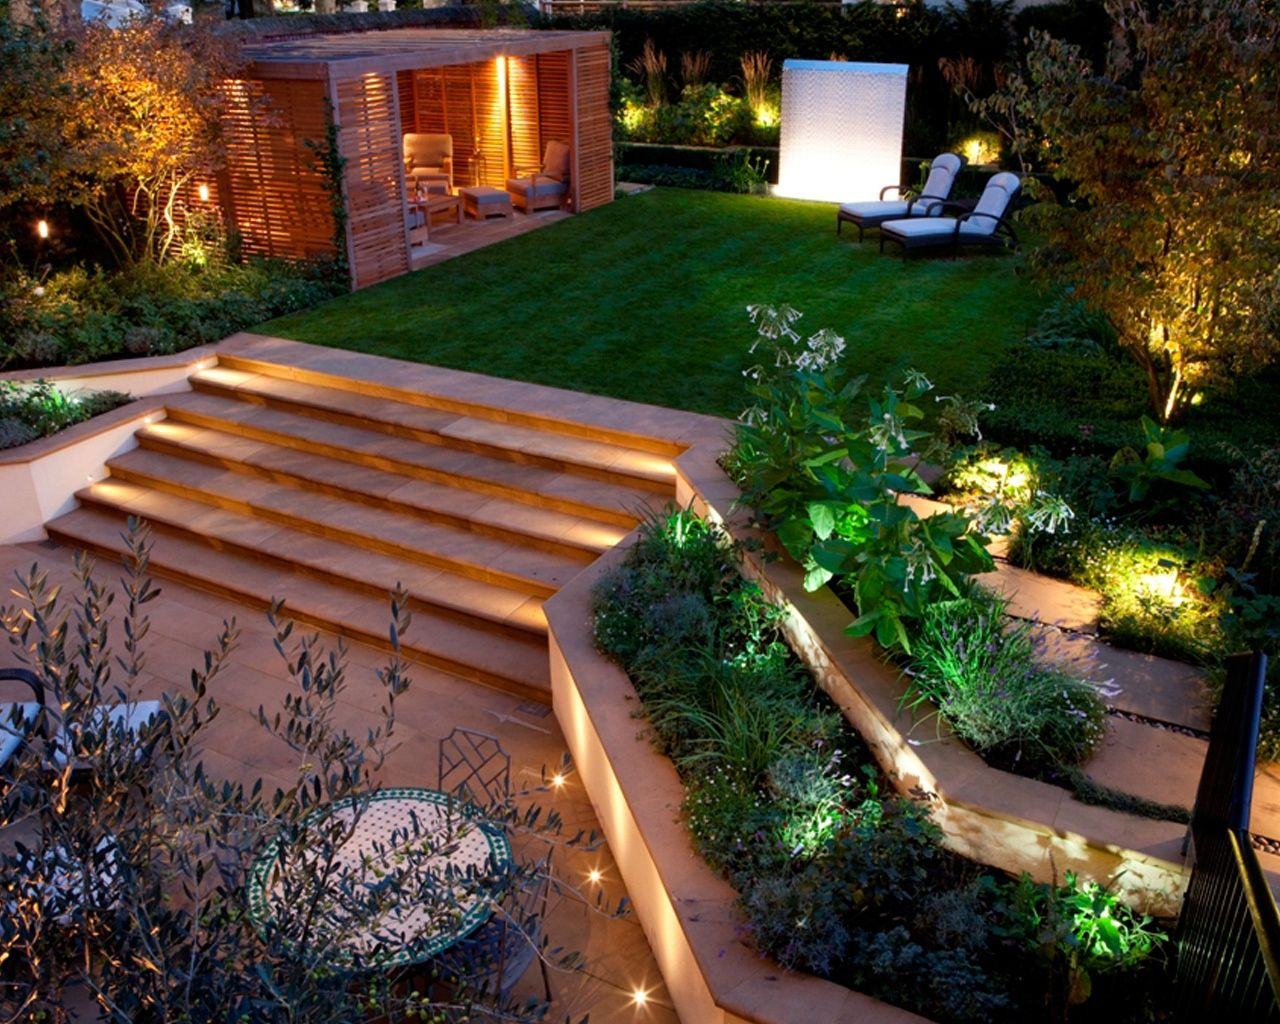 Garden Design Ideas view in gallery japanese gravel garden with a distinct pattern 50 Modern Garden Design Ideas To Try In 2017